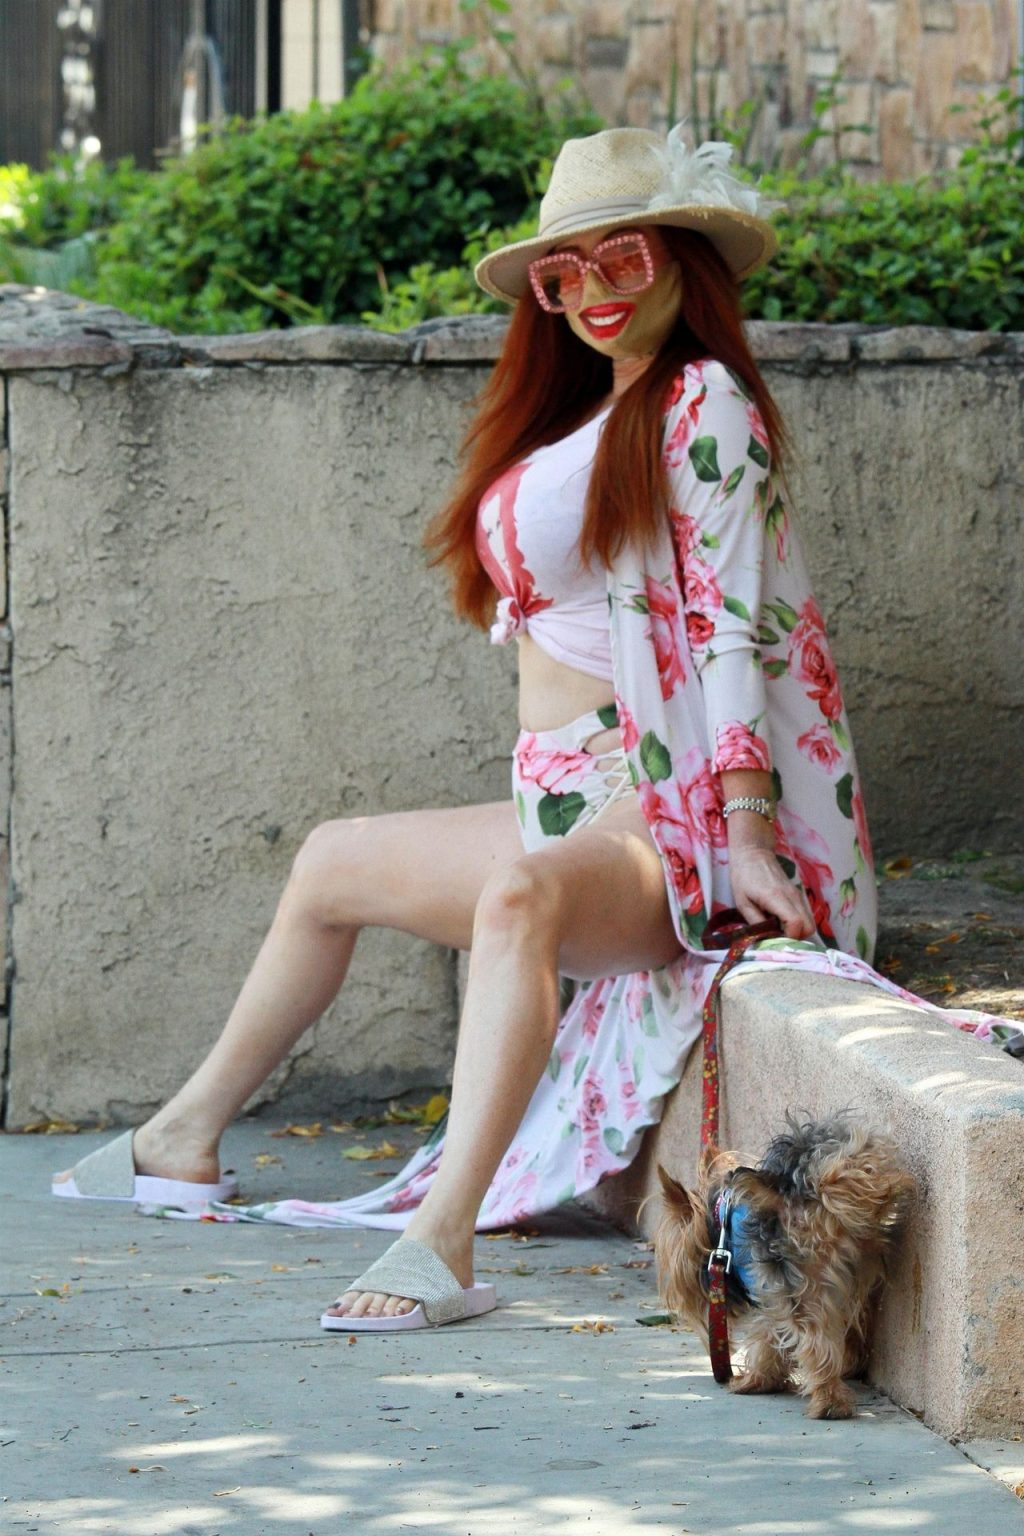 Phoebe Price Flashes Her Bum in a Floral Dress (19 Photos)